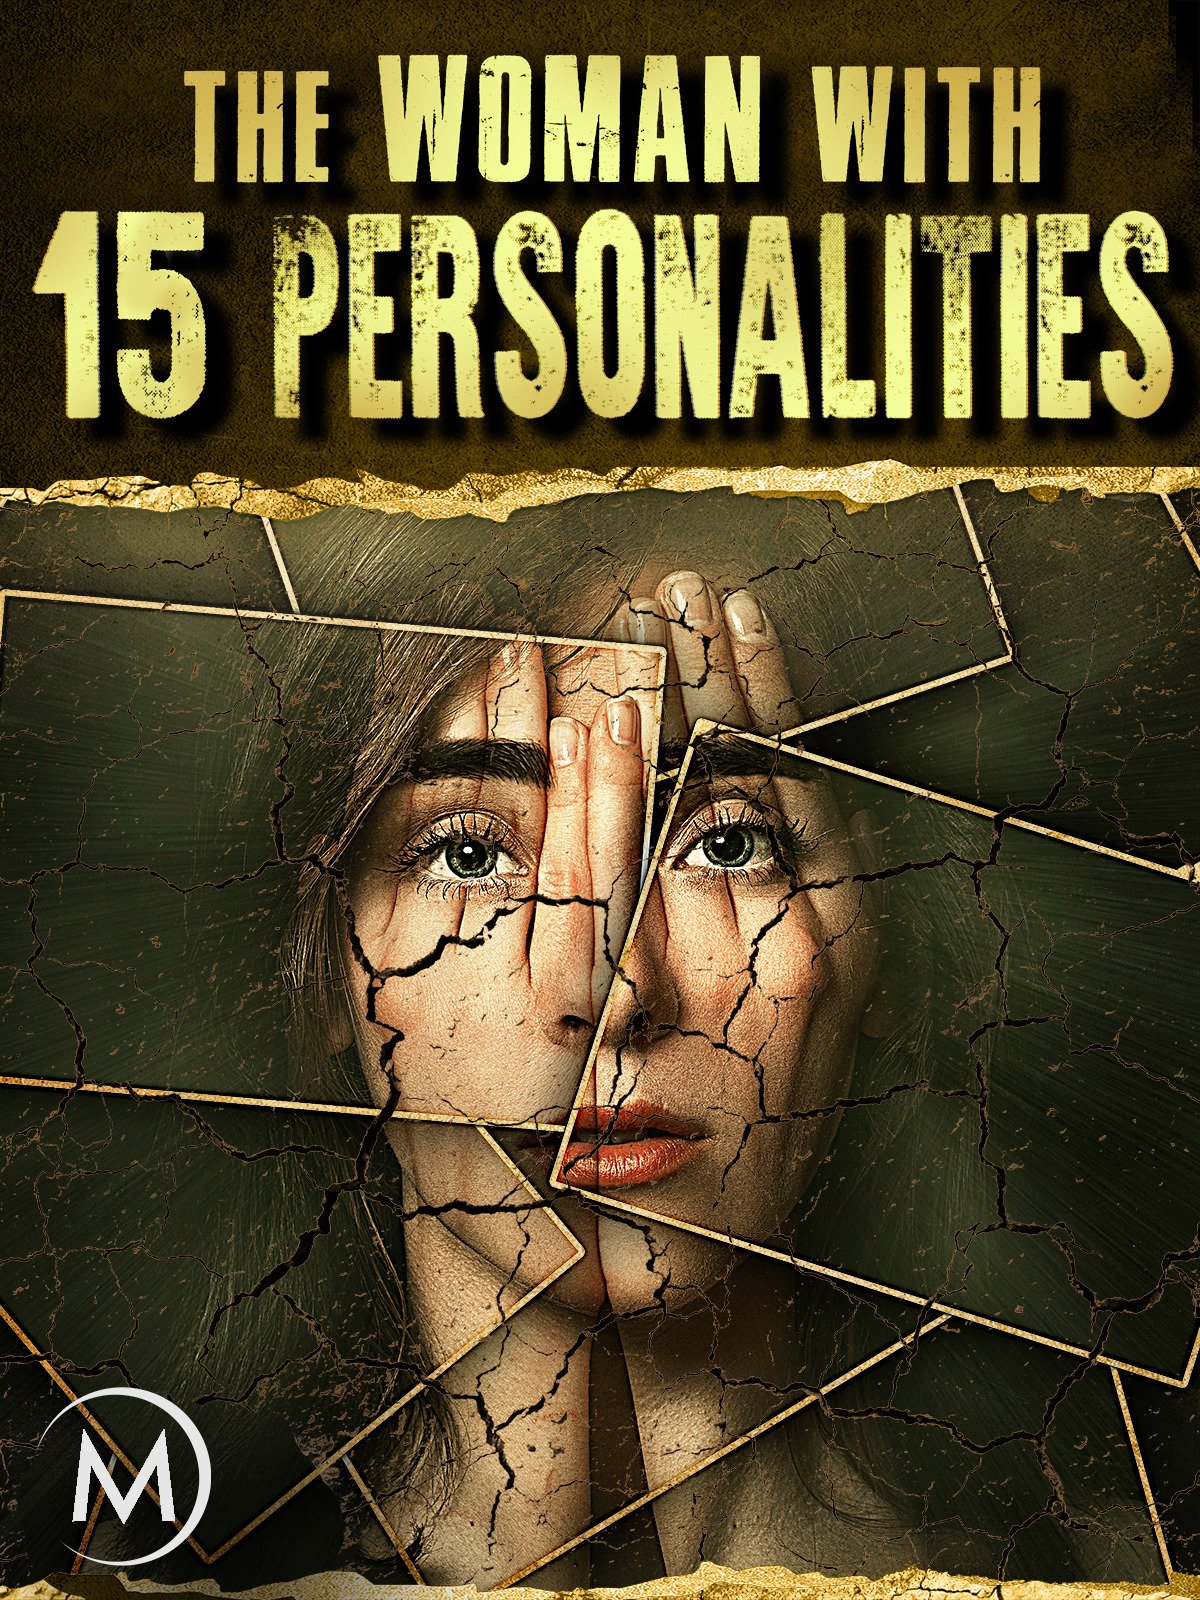 Amazon.com: The Woman with 15 Personalities: Jan Kimbrough